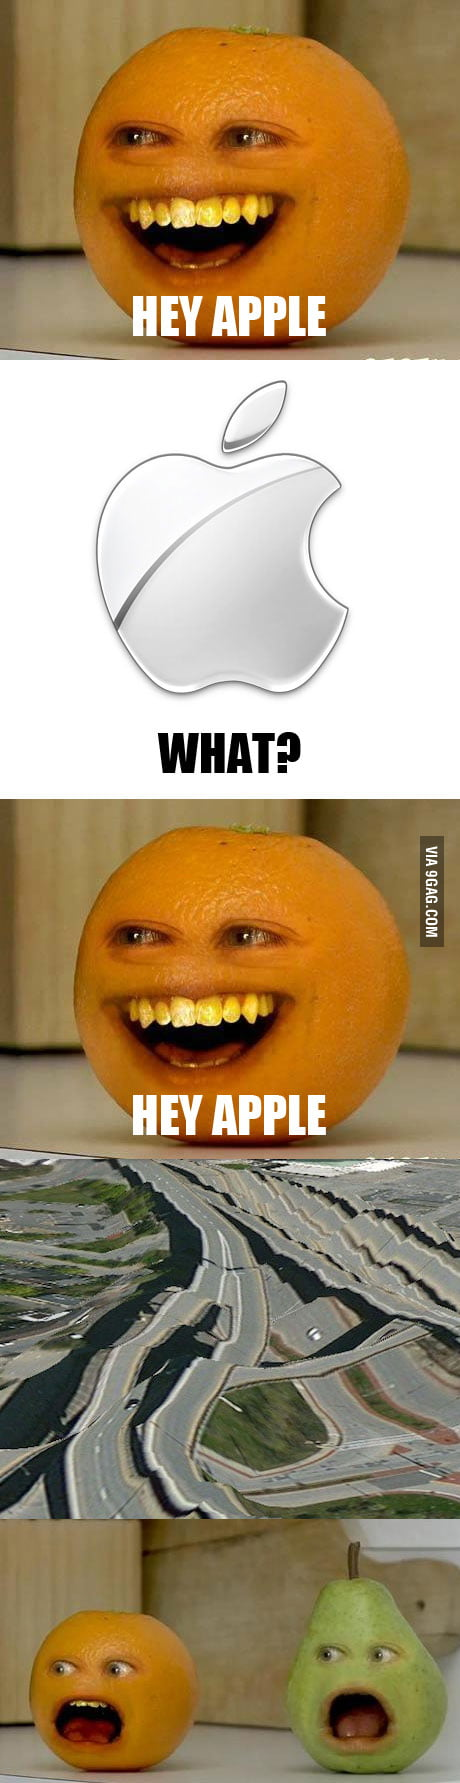 Hey Apple